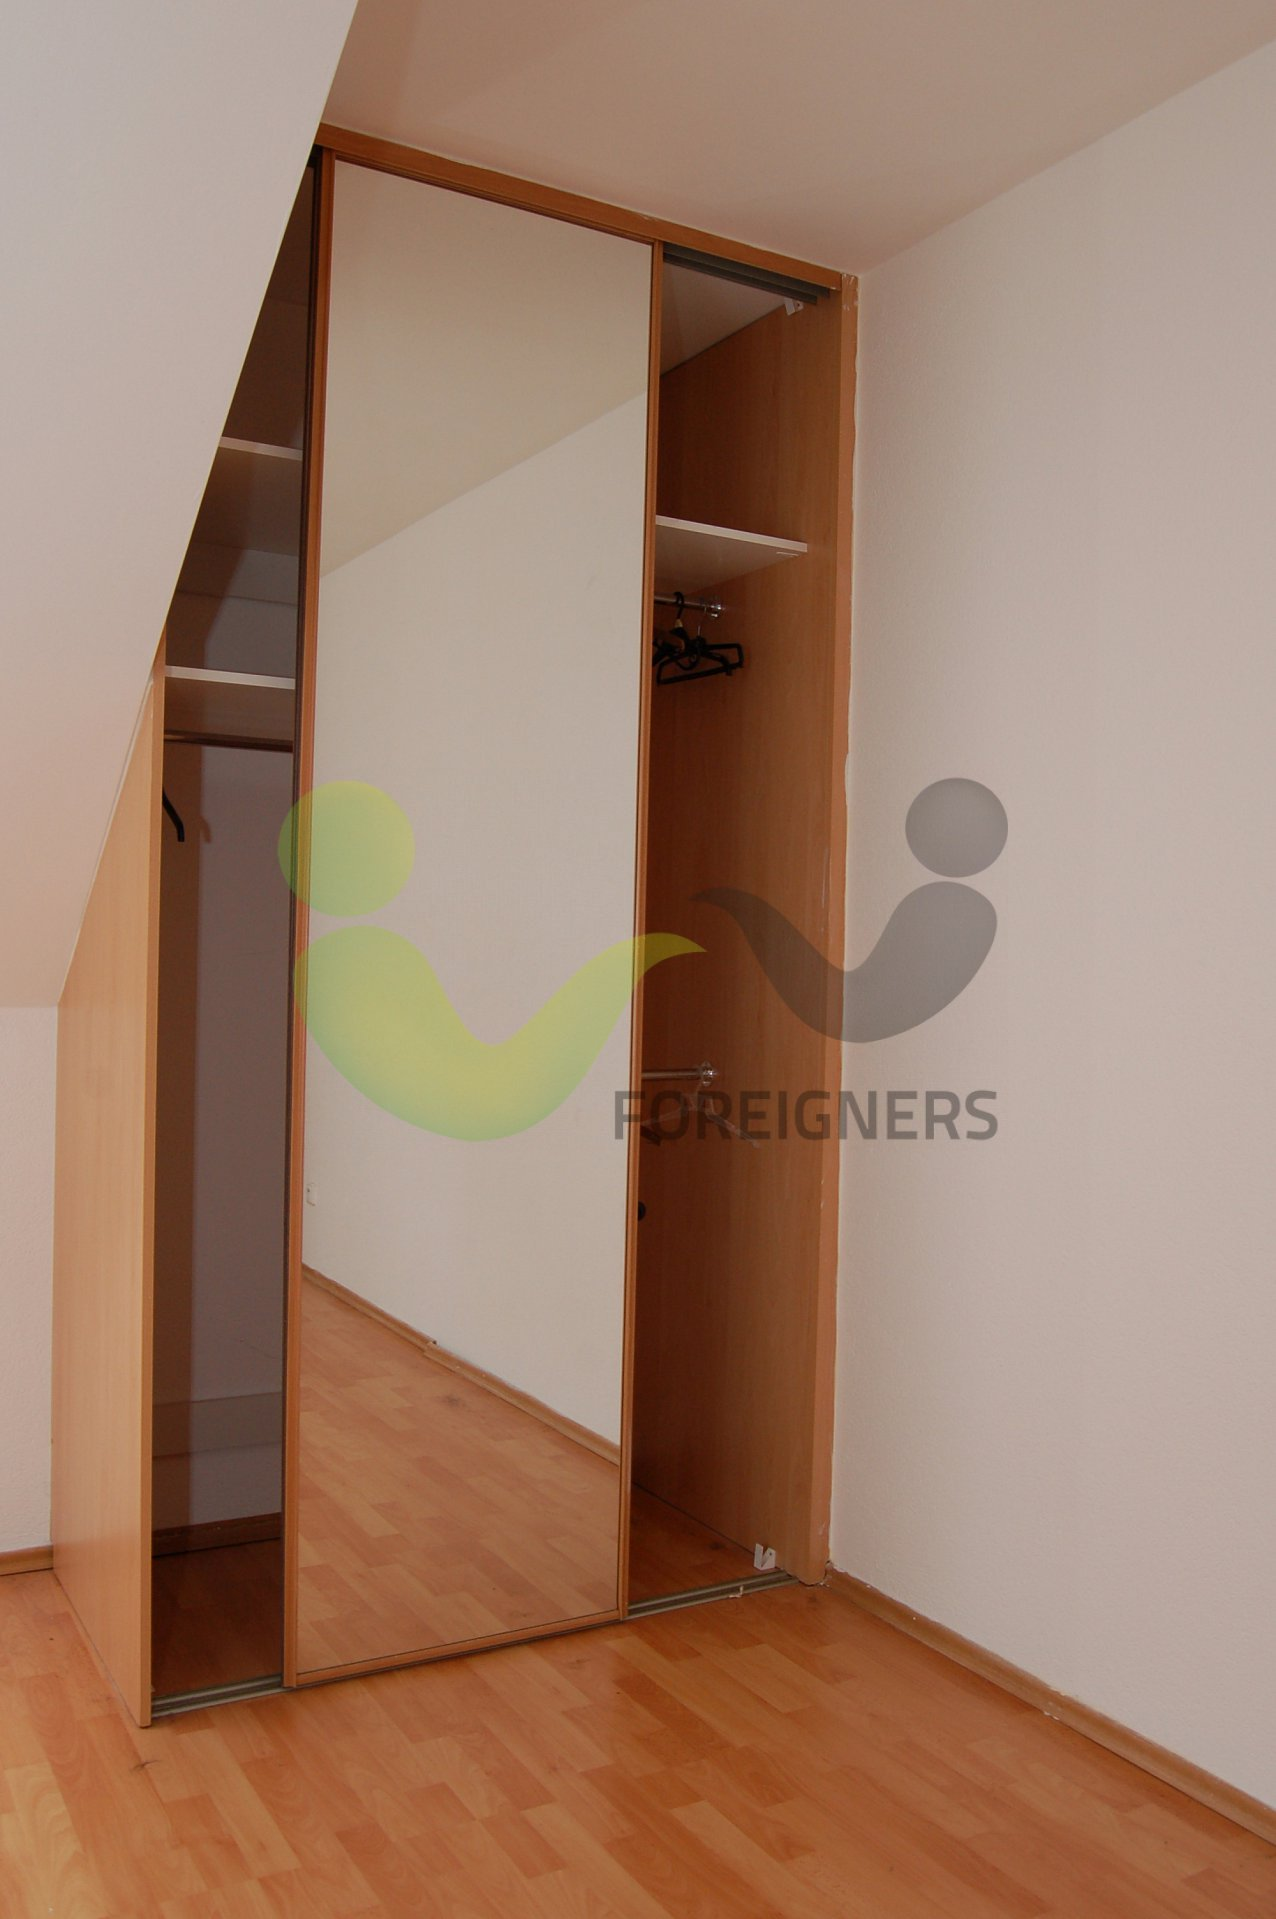 1 bedroom 2 kk apartment for rent in pilsen - 2 bedroom apartment for rent near me ...